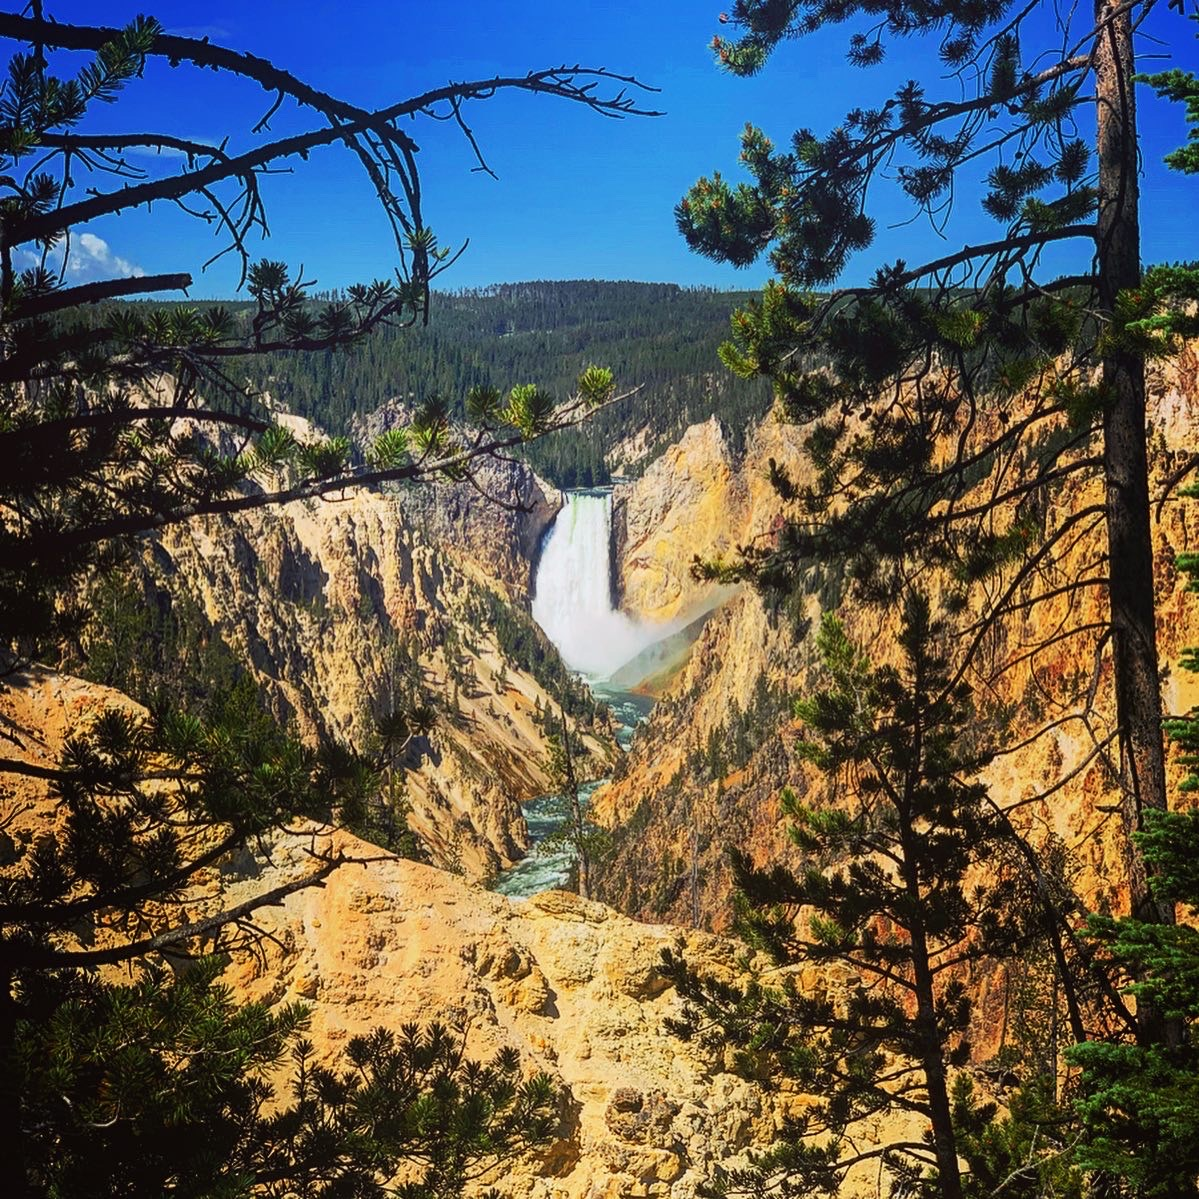 Upper Falls of the Grand Canyon of the Yellowstone